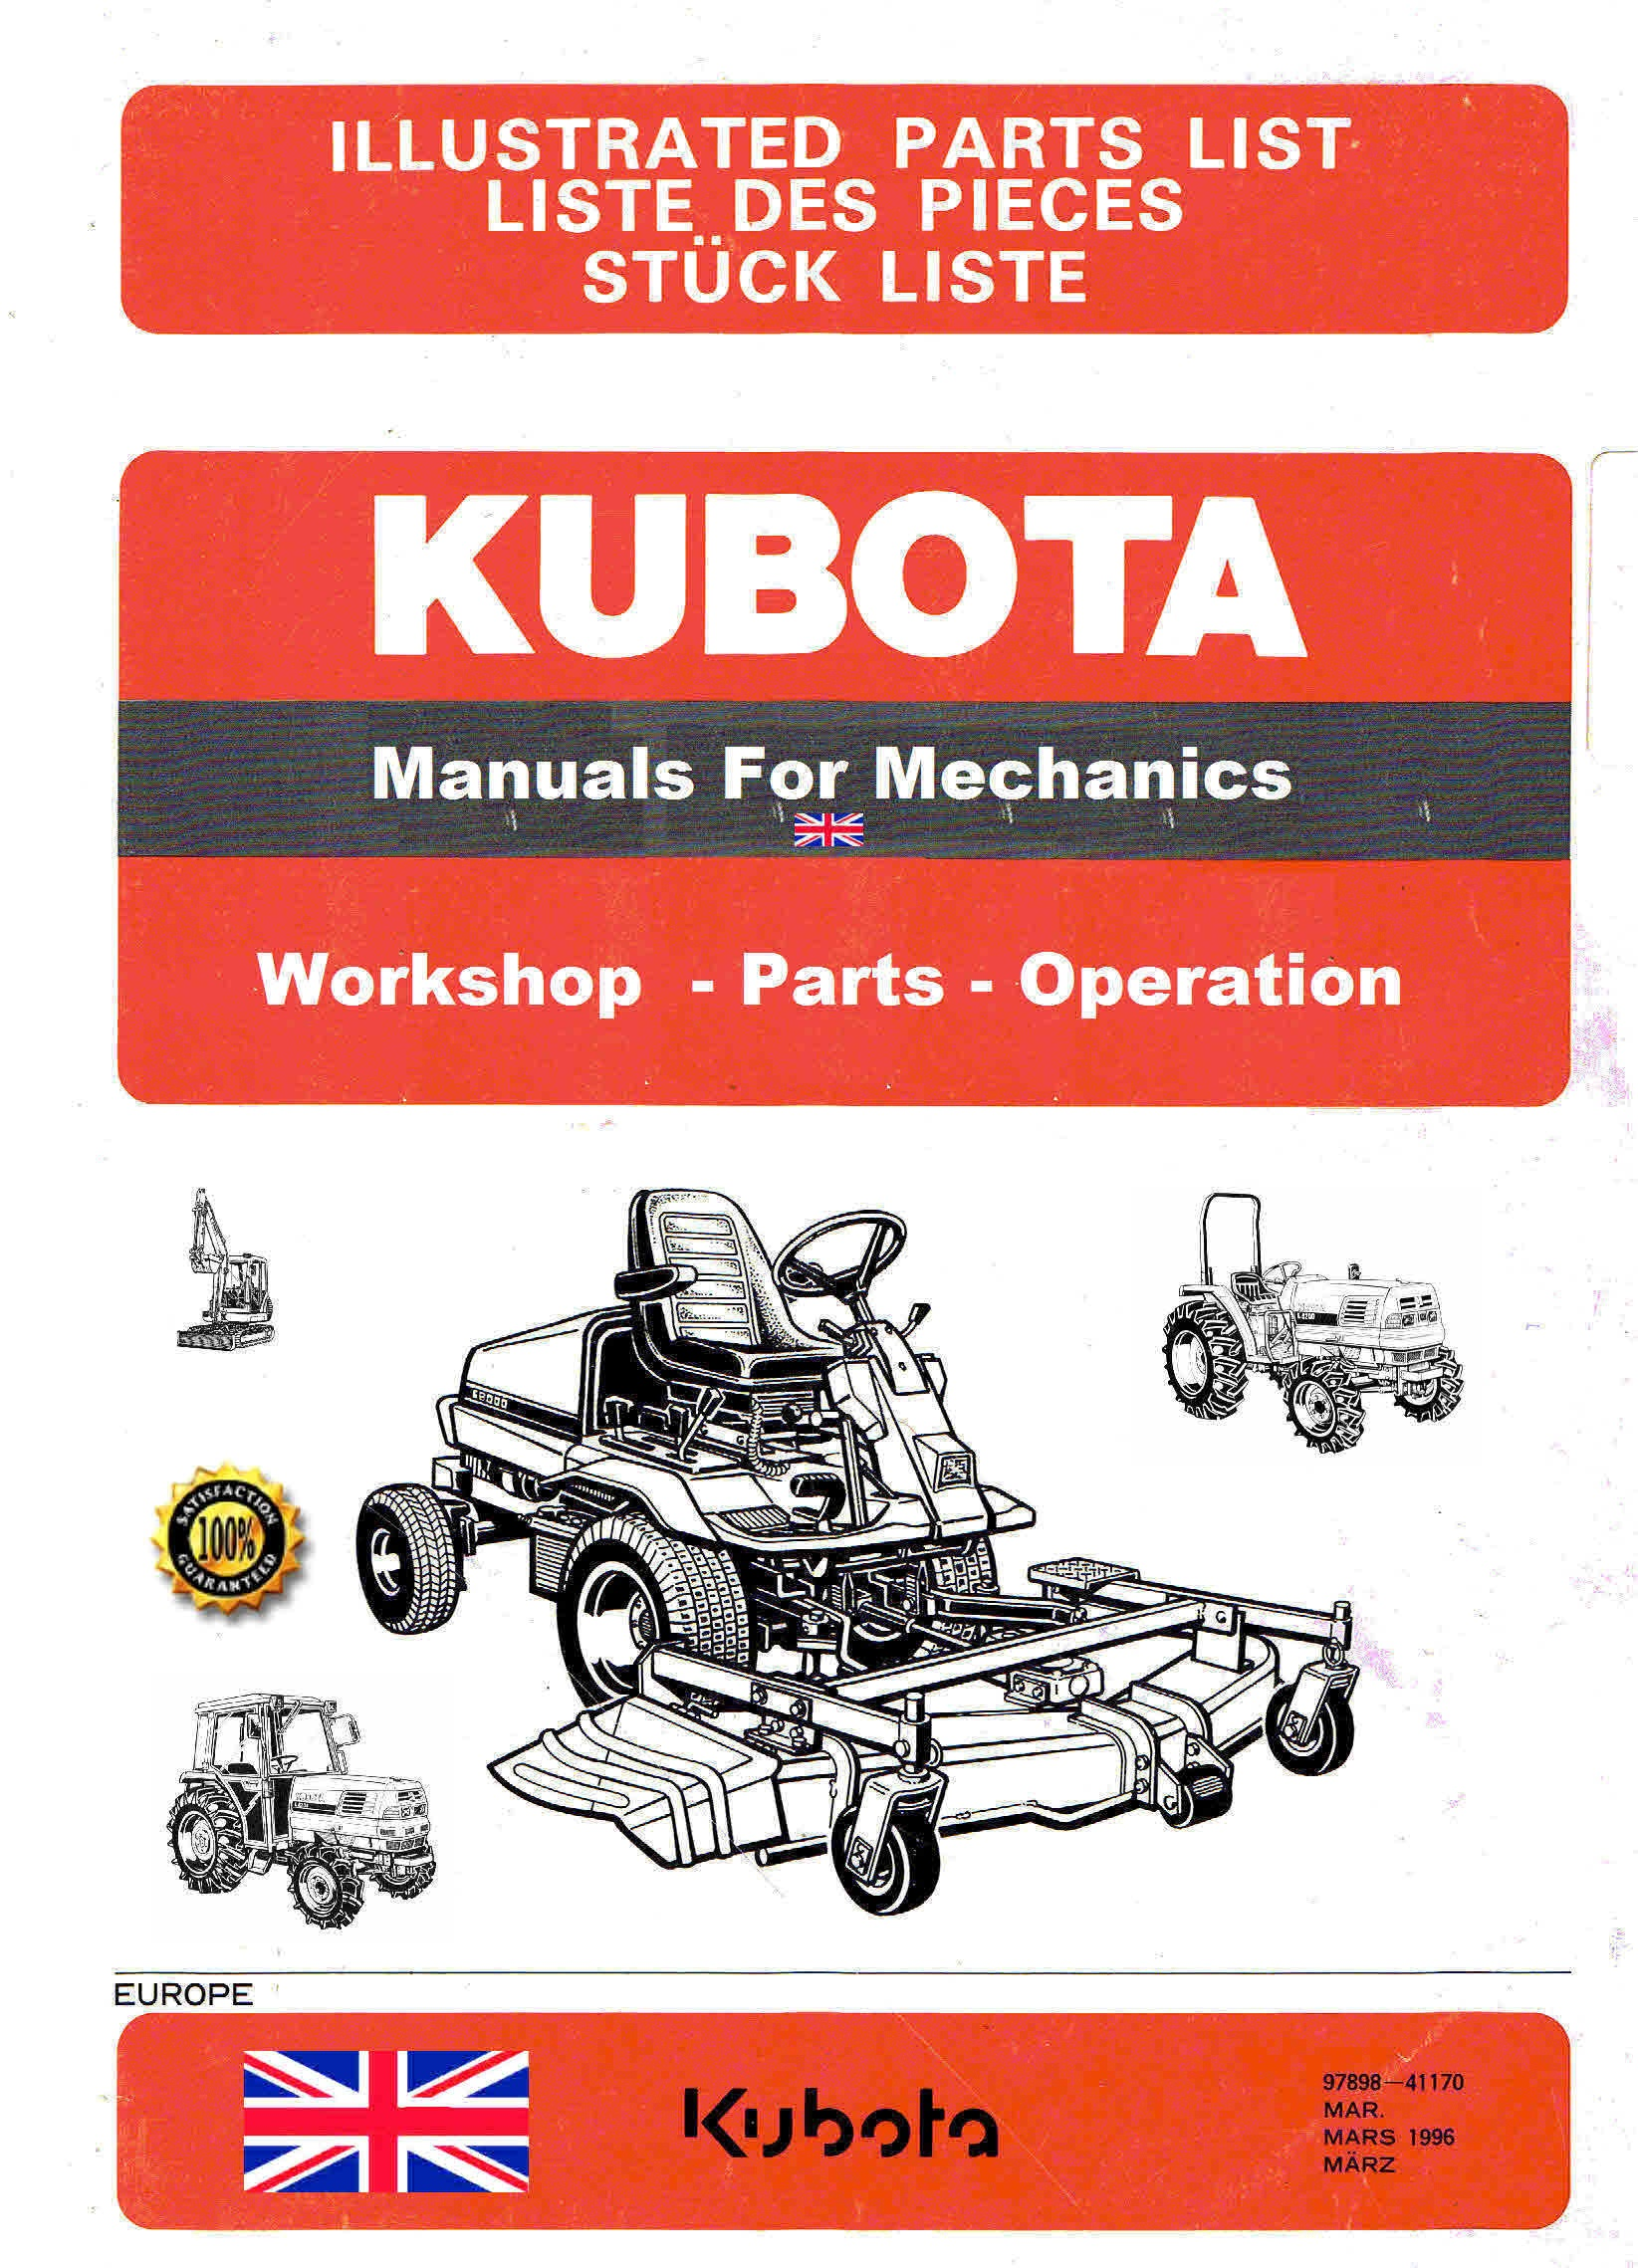 kubota manuals for mechanics themanualman rh sellfy com Kubota T1560 Manual Online Kubota T1560 Tires